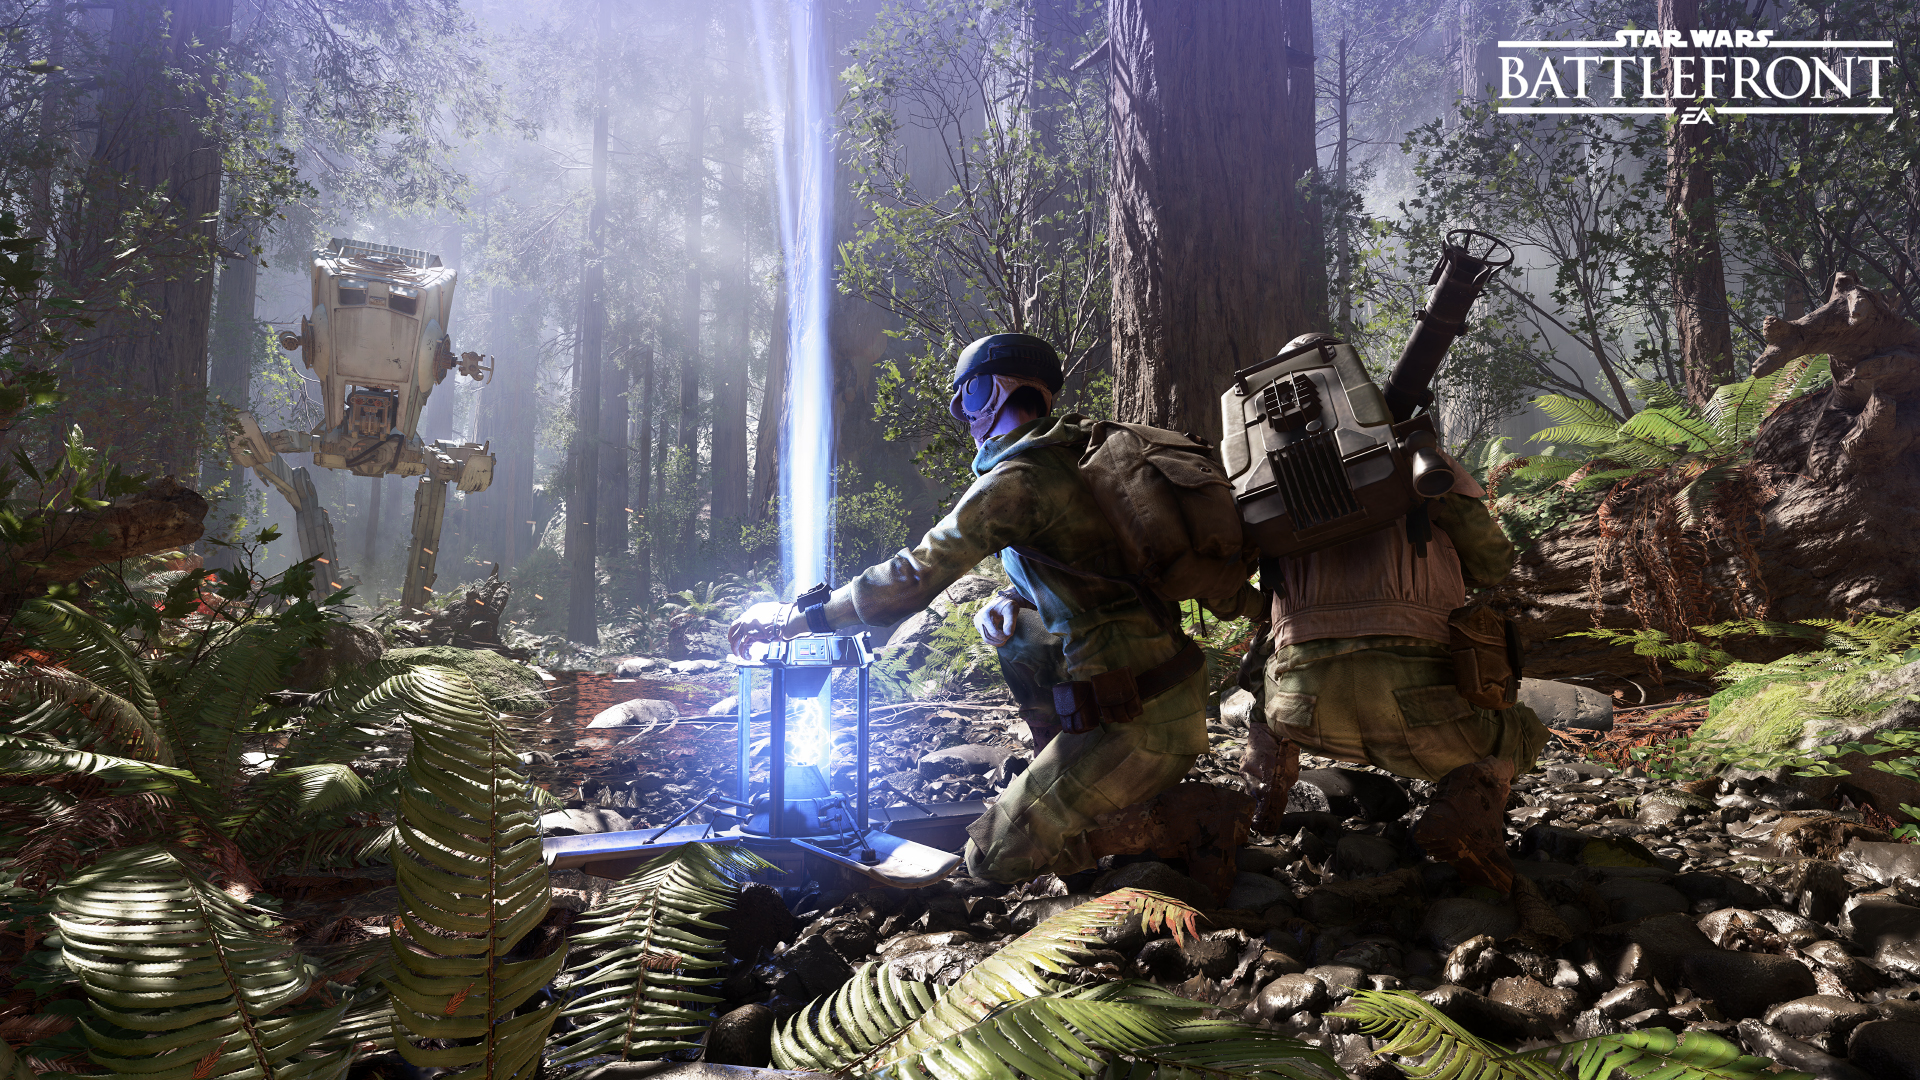 star wars battlefront screeny (6)